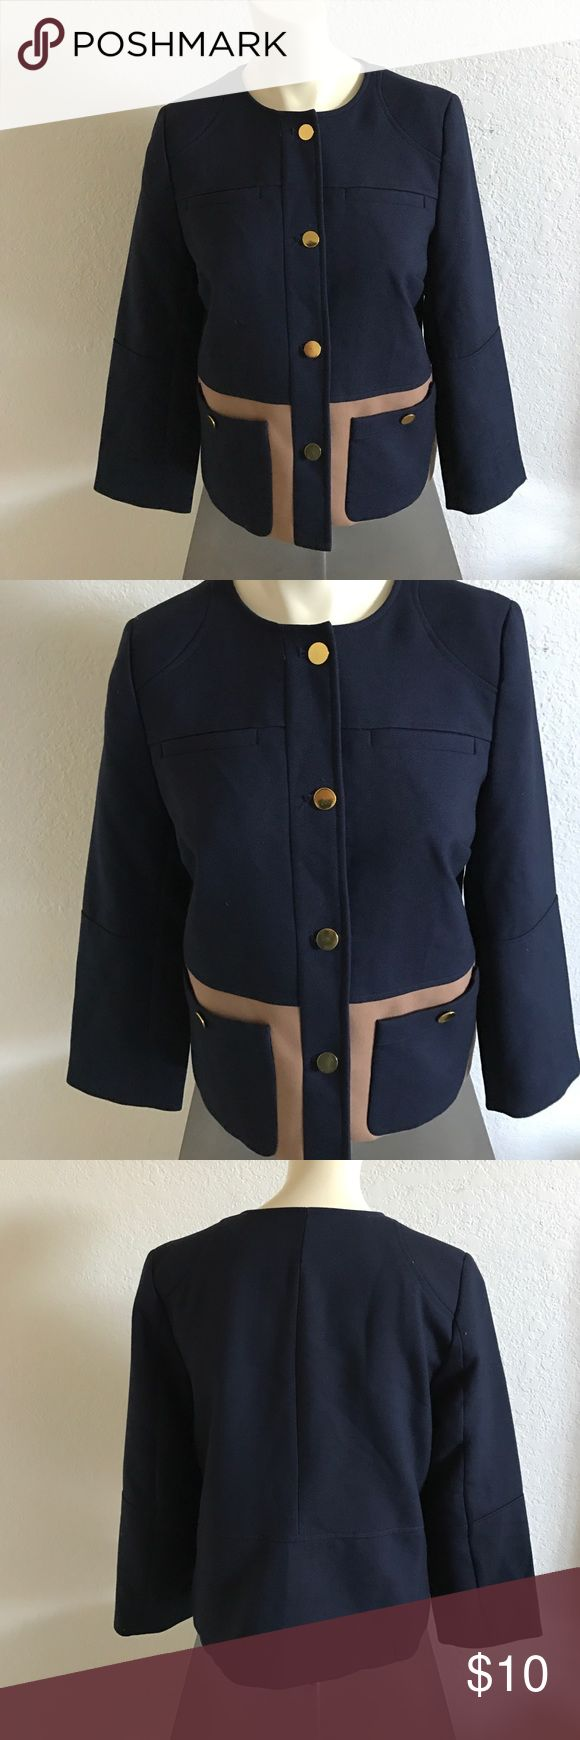 Women's Military Style Jacket by H&M Super cute jacket by H&M *no defects size: 6/small H&M Jackets & Coats Blazers